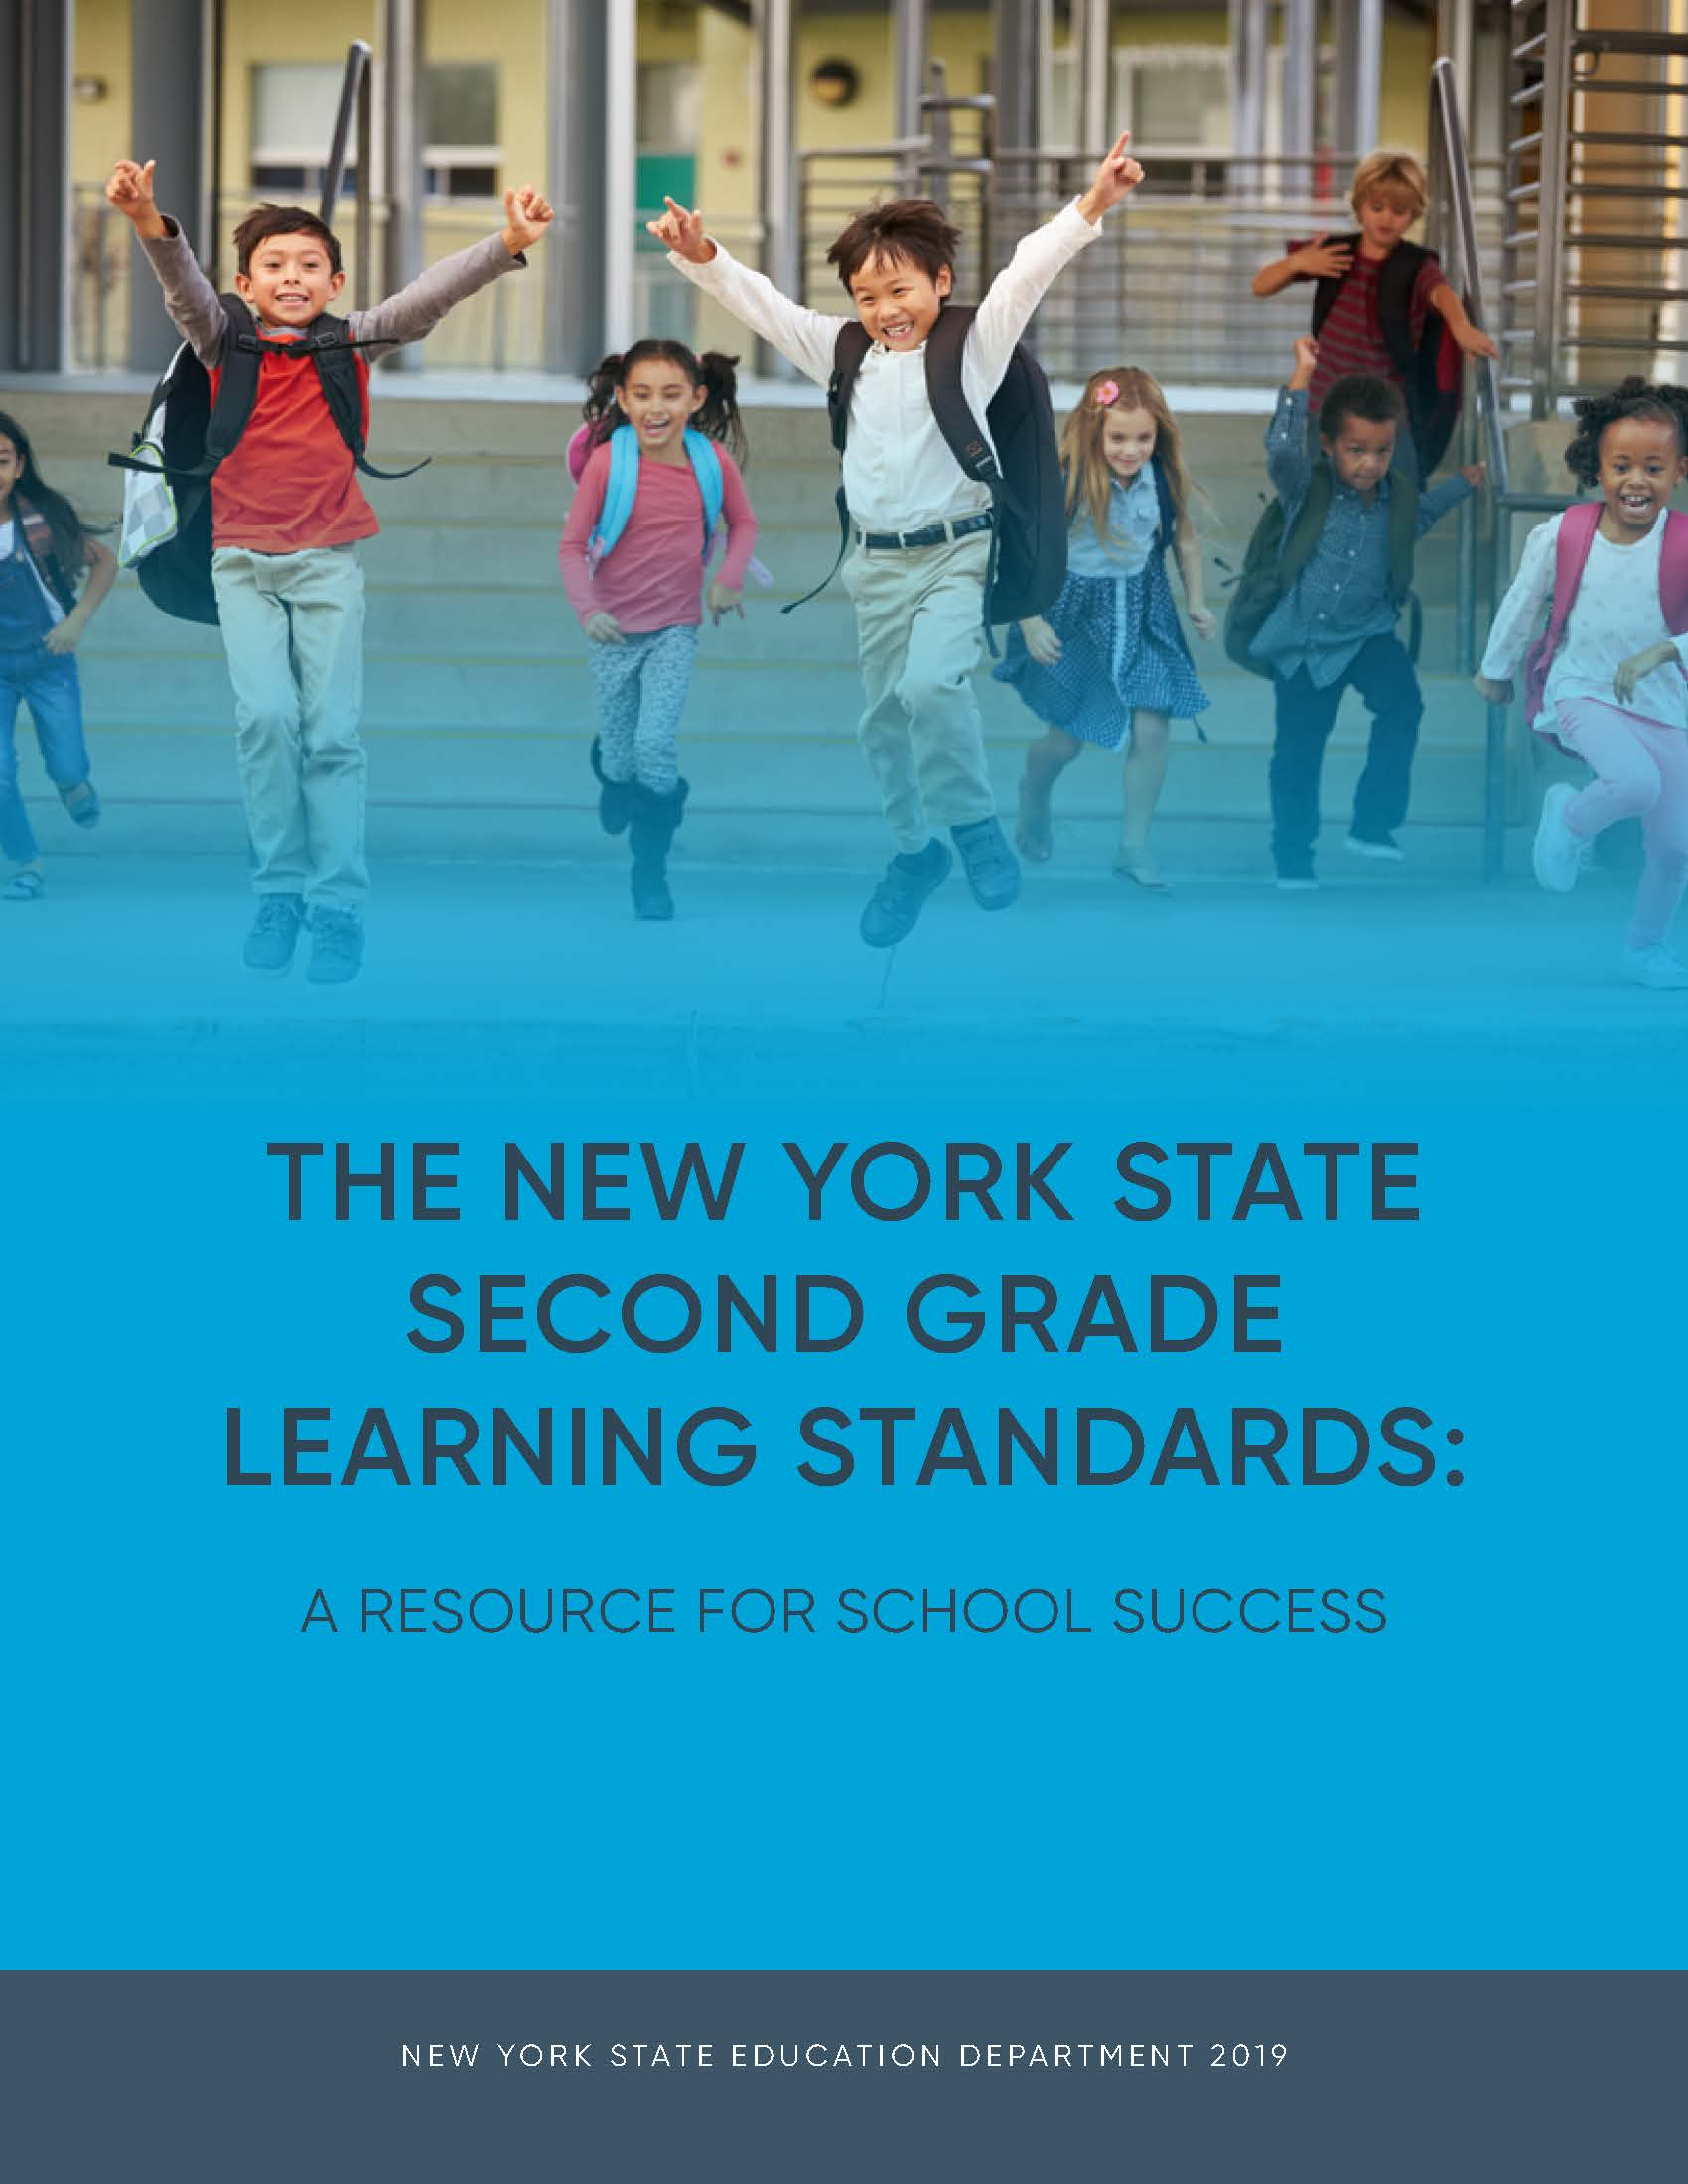 second grade learning standards